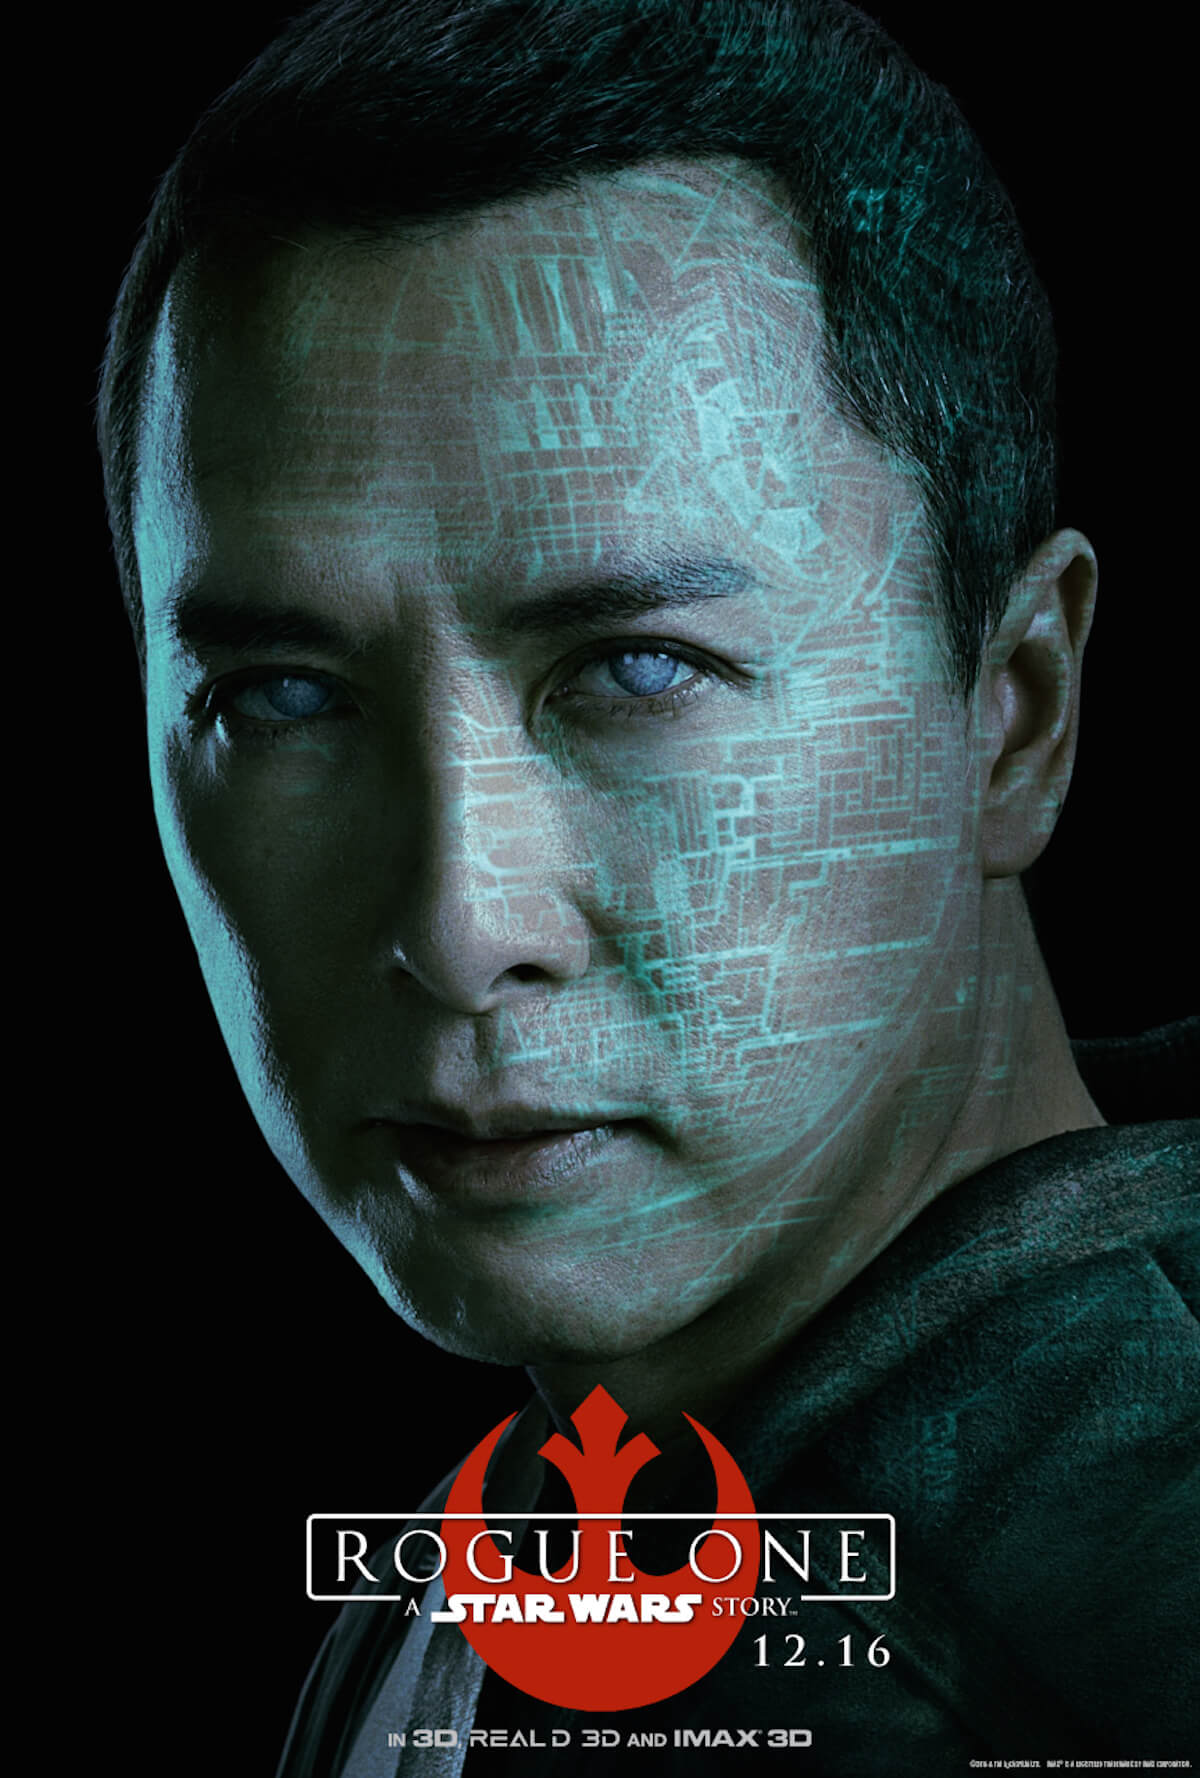 Rogue one poster donnie yen